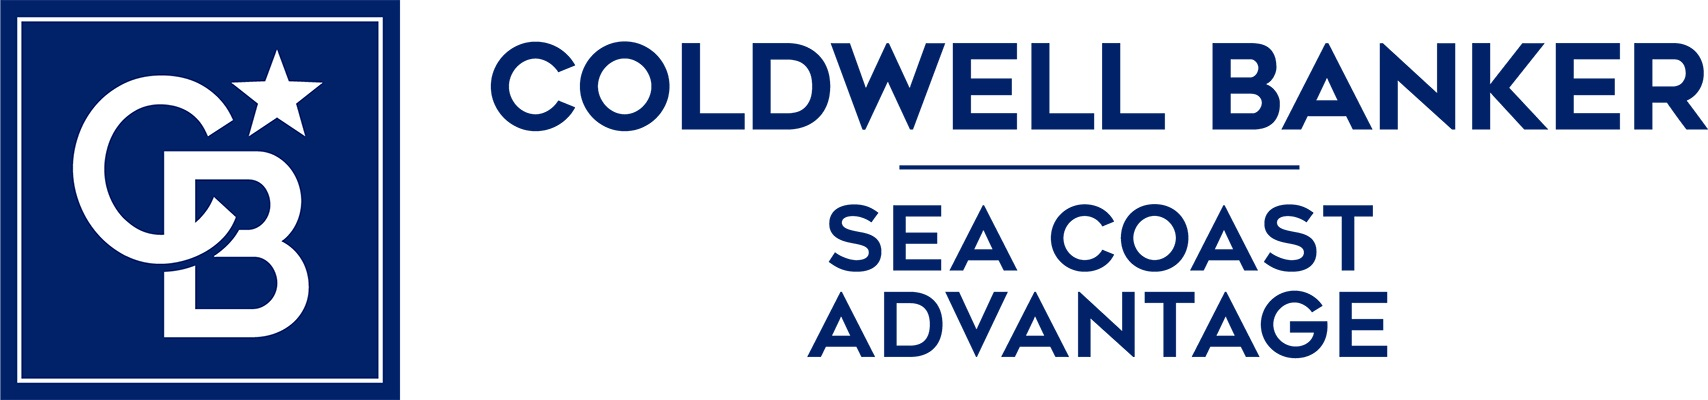 Nina King - Coldwell Banker Sea Coast Advantage Realty